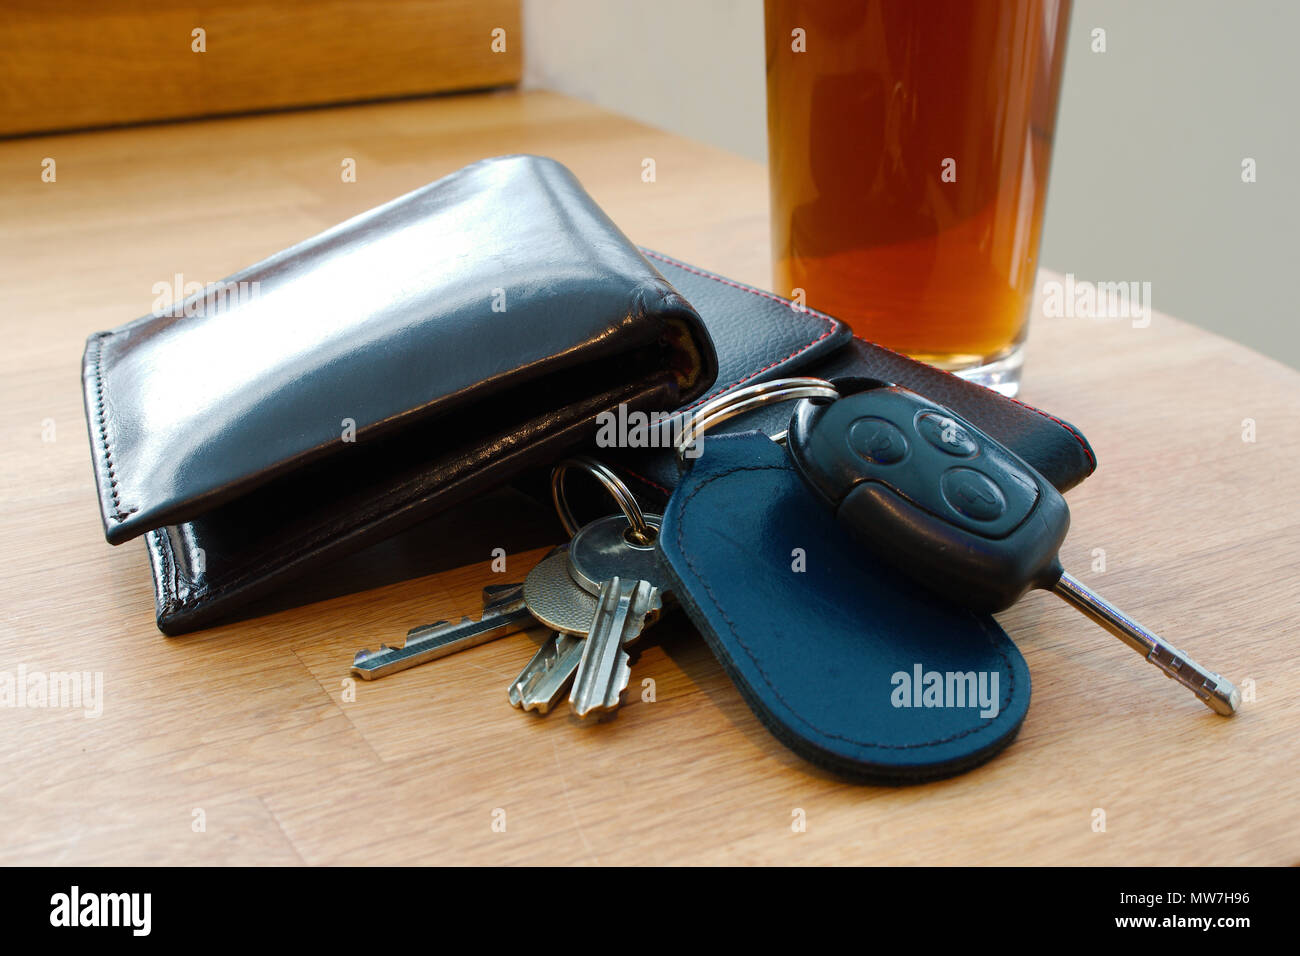 Wallet Car Key House Keys And Mobile Phone On A Table Together